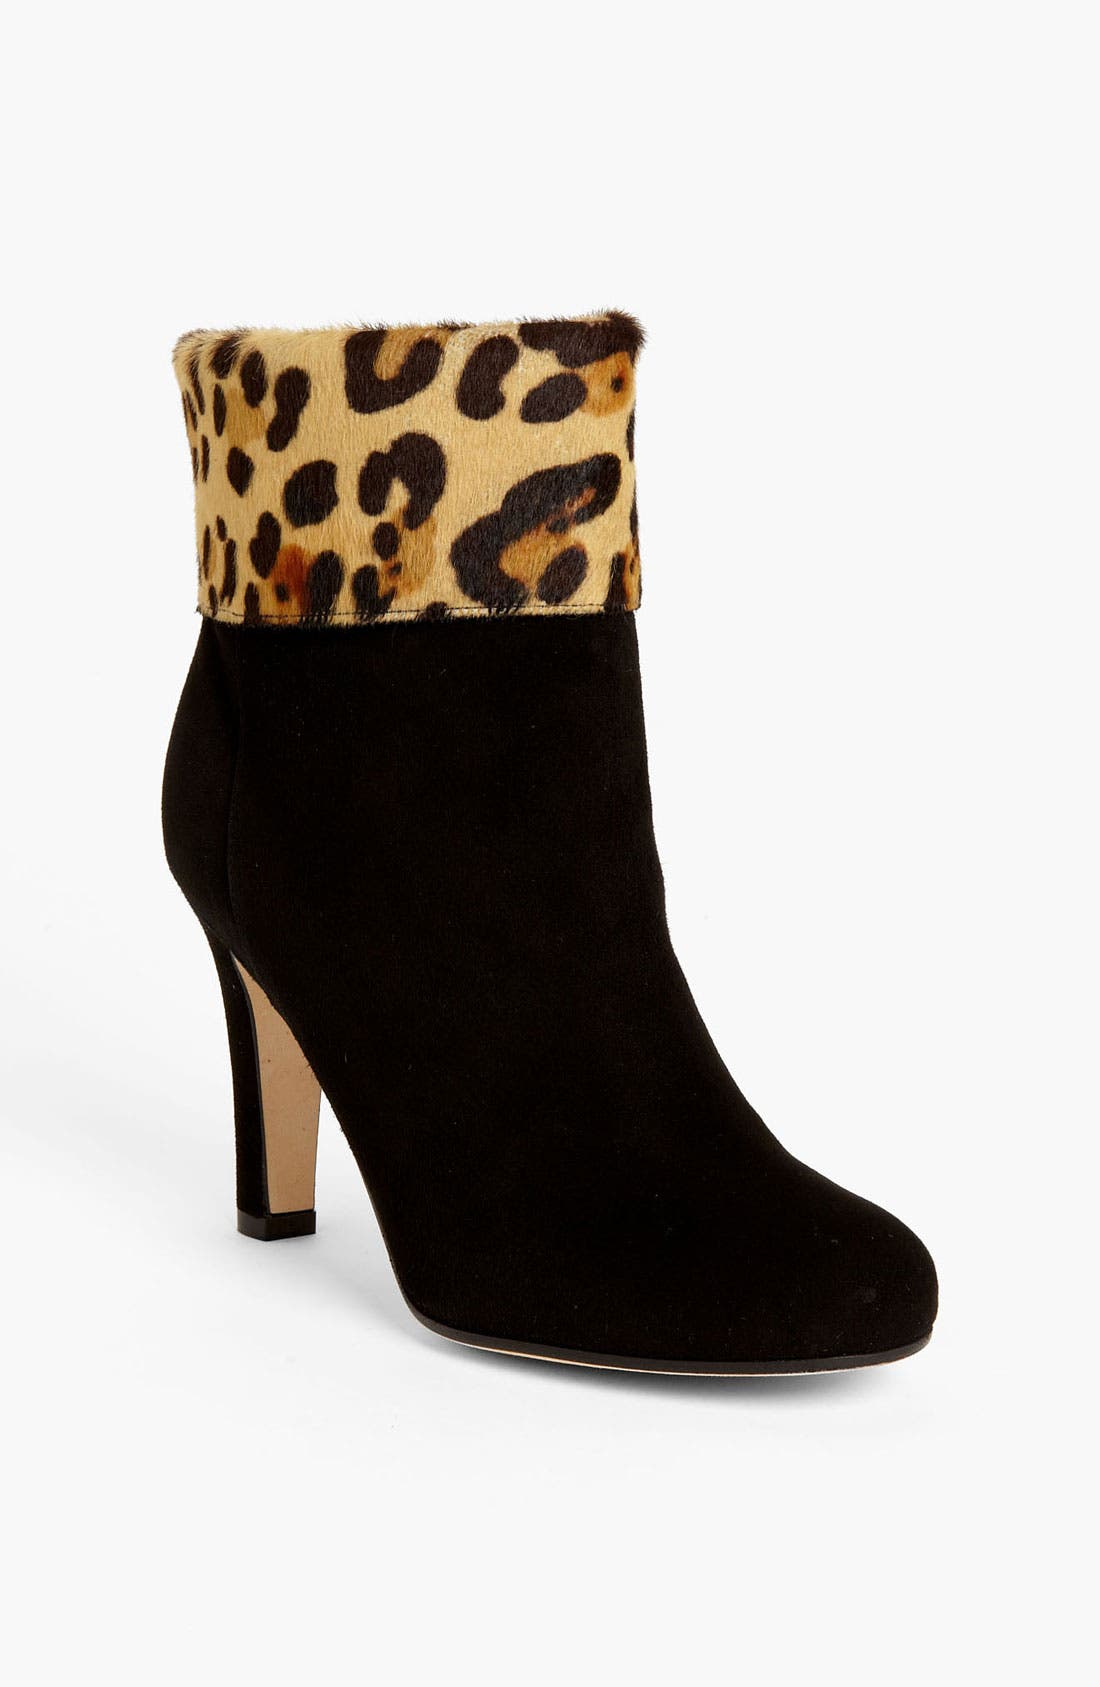 Alternate Image 1 Selected - kate spade new york 'lasso' boot